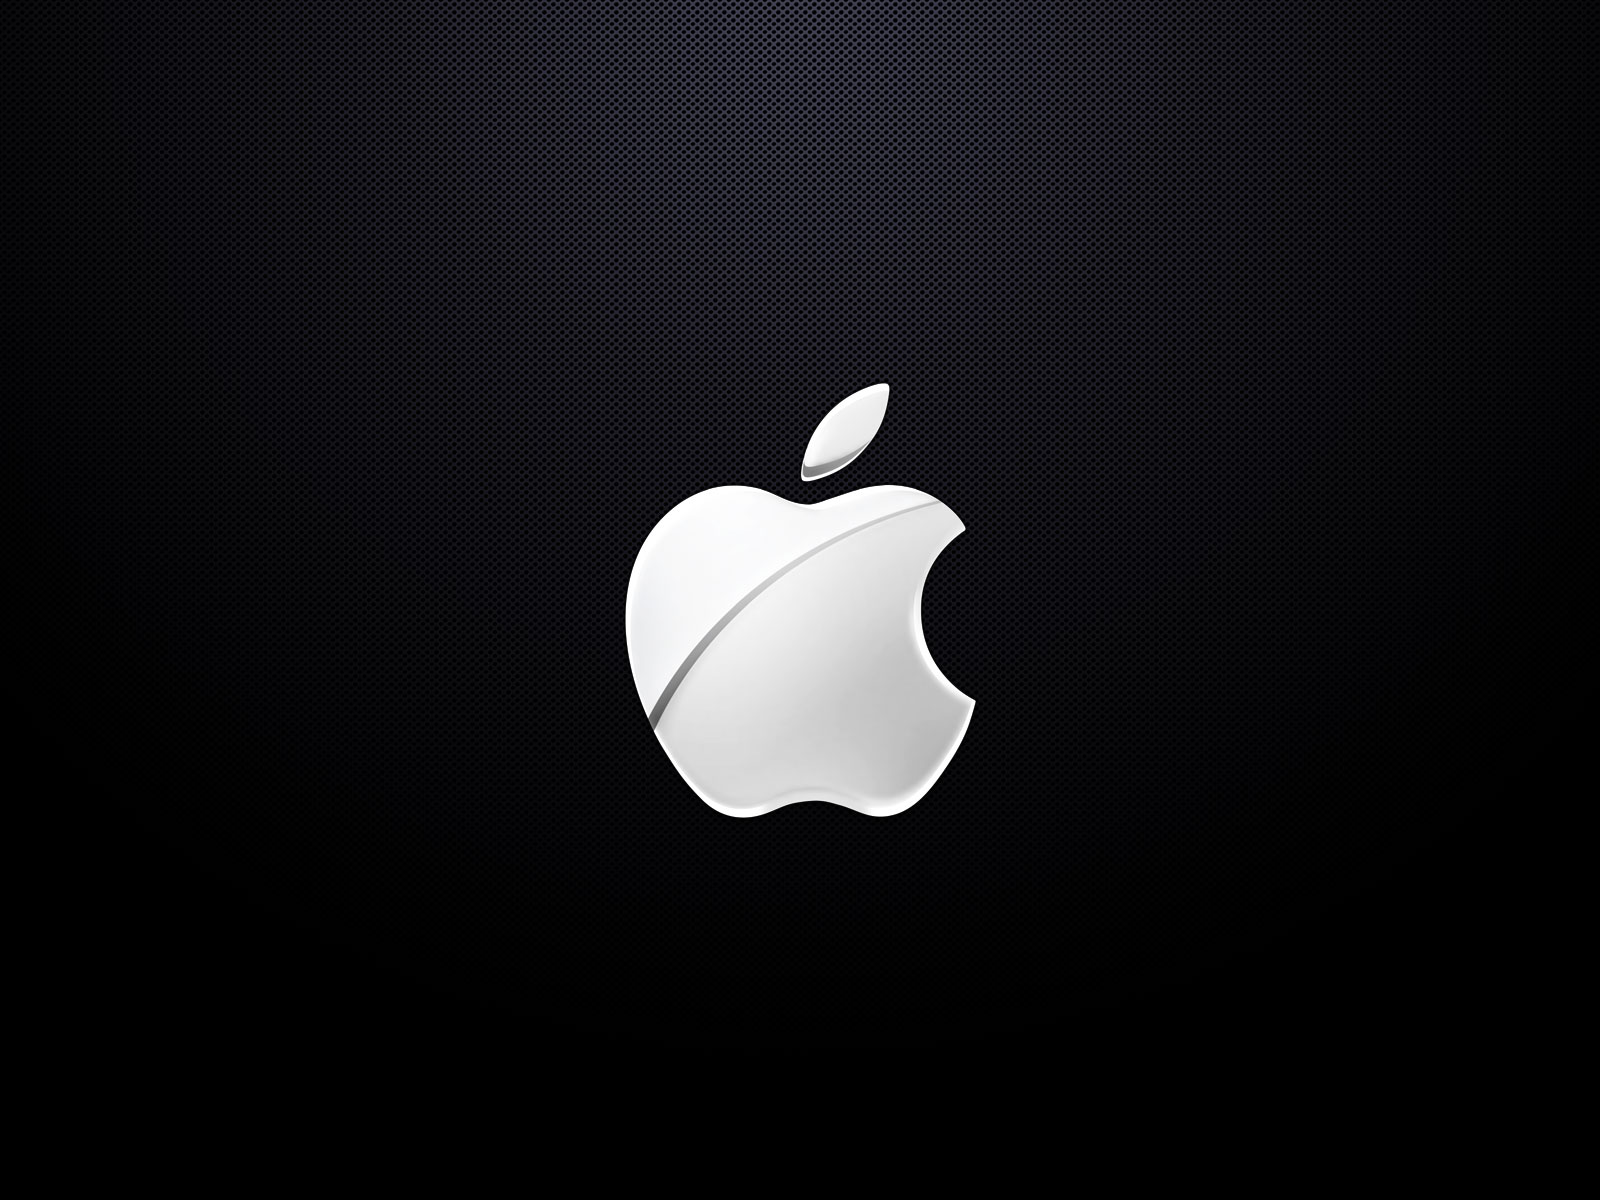 white apple logo wallpaper 1600x1200